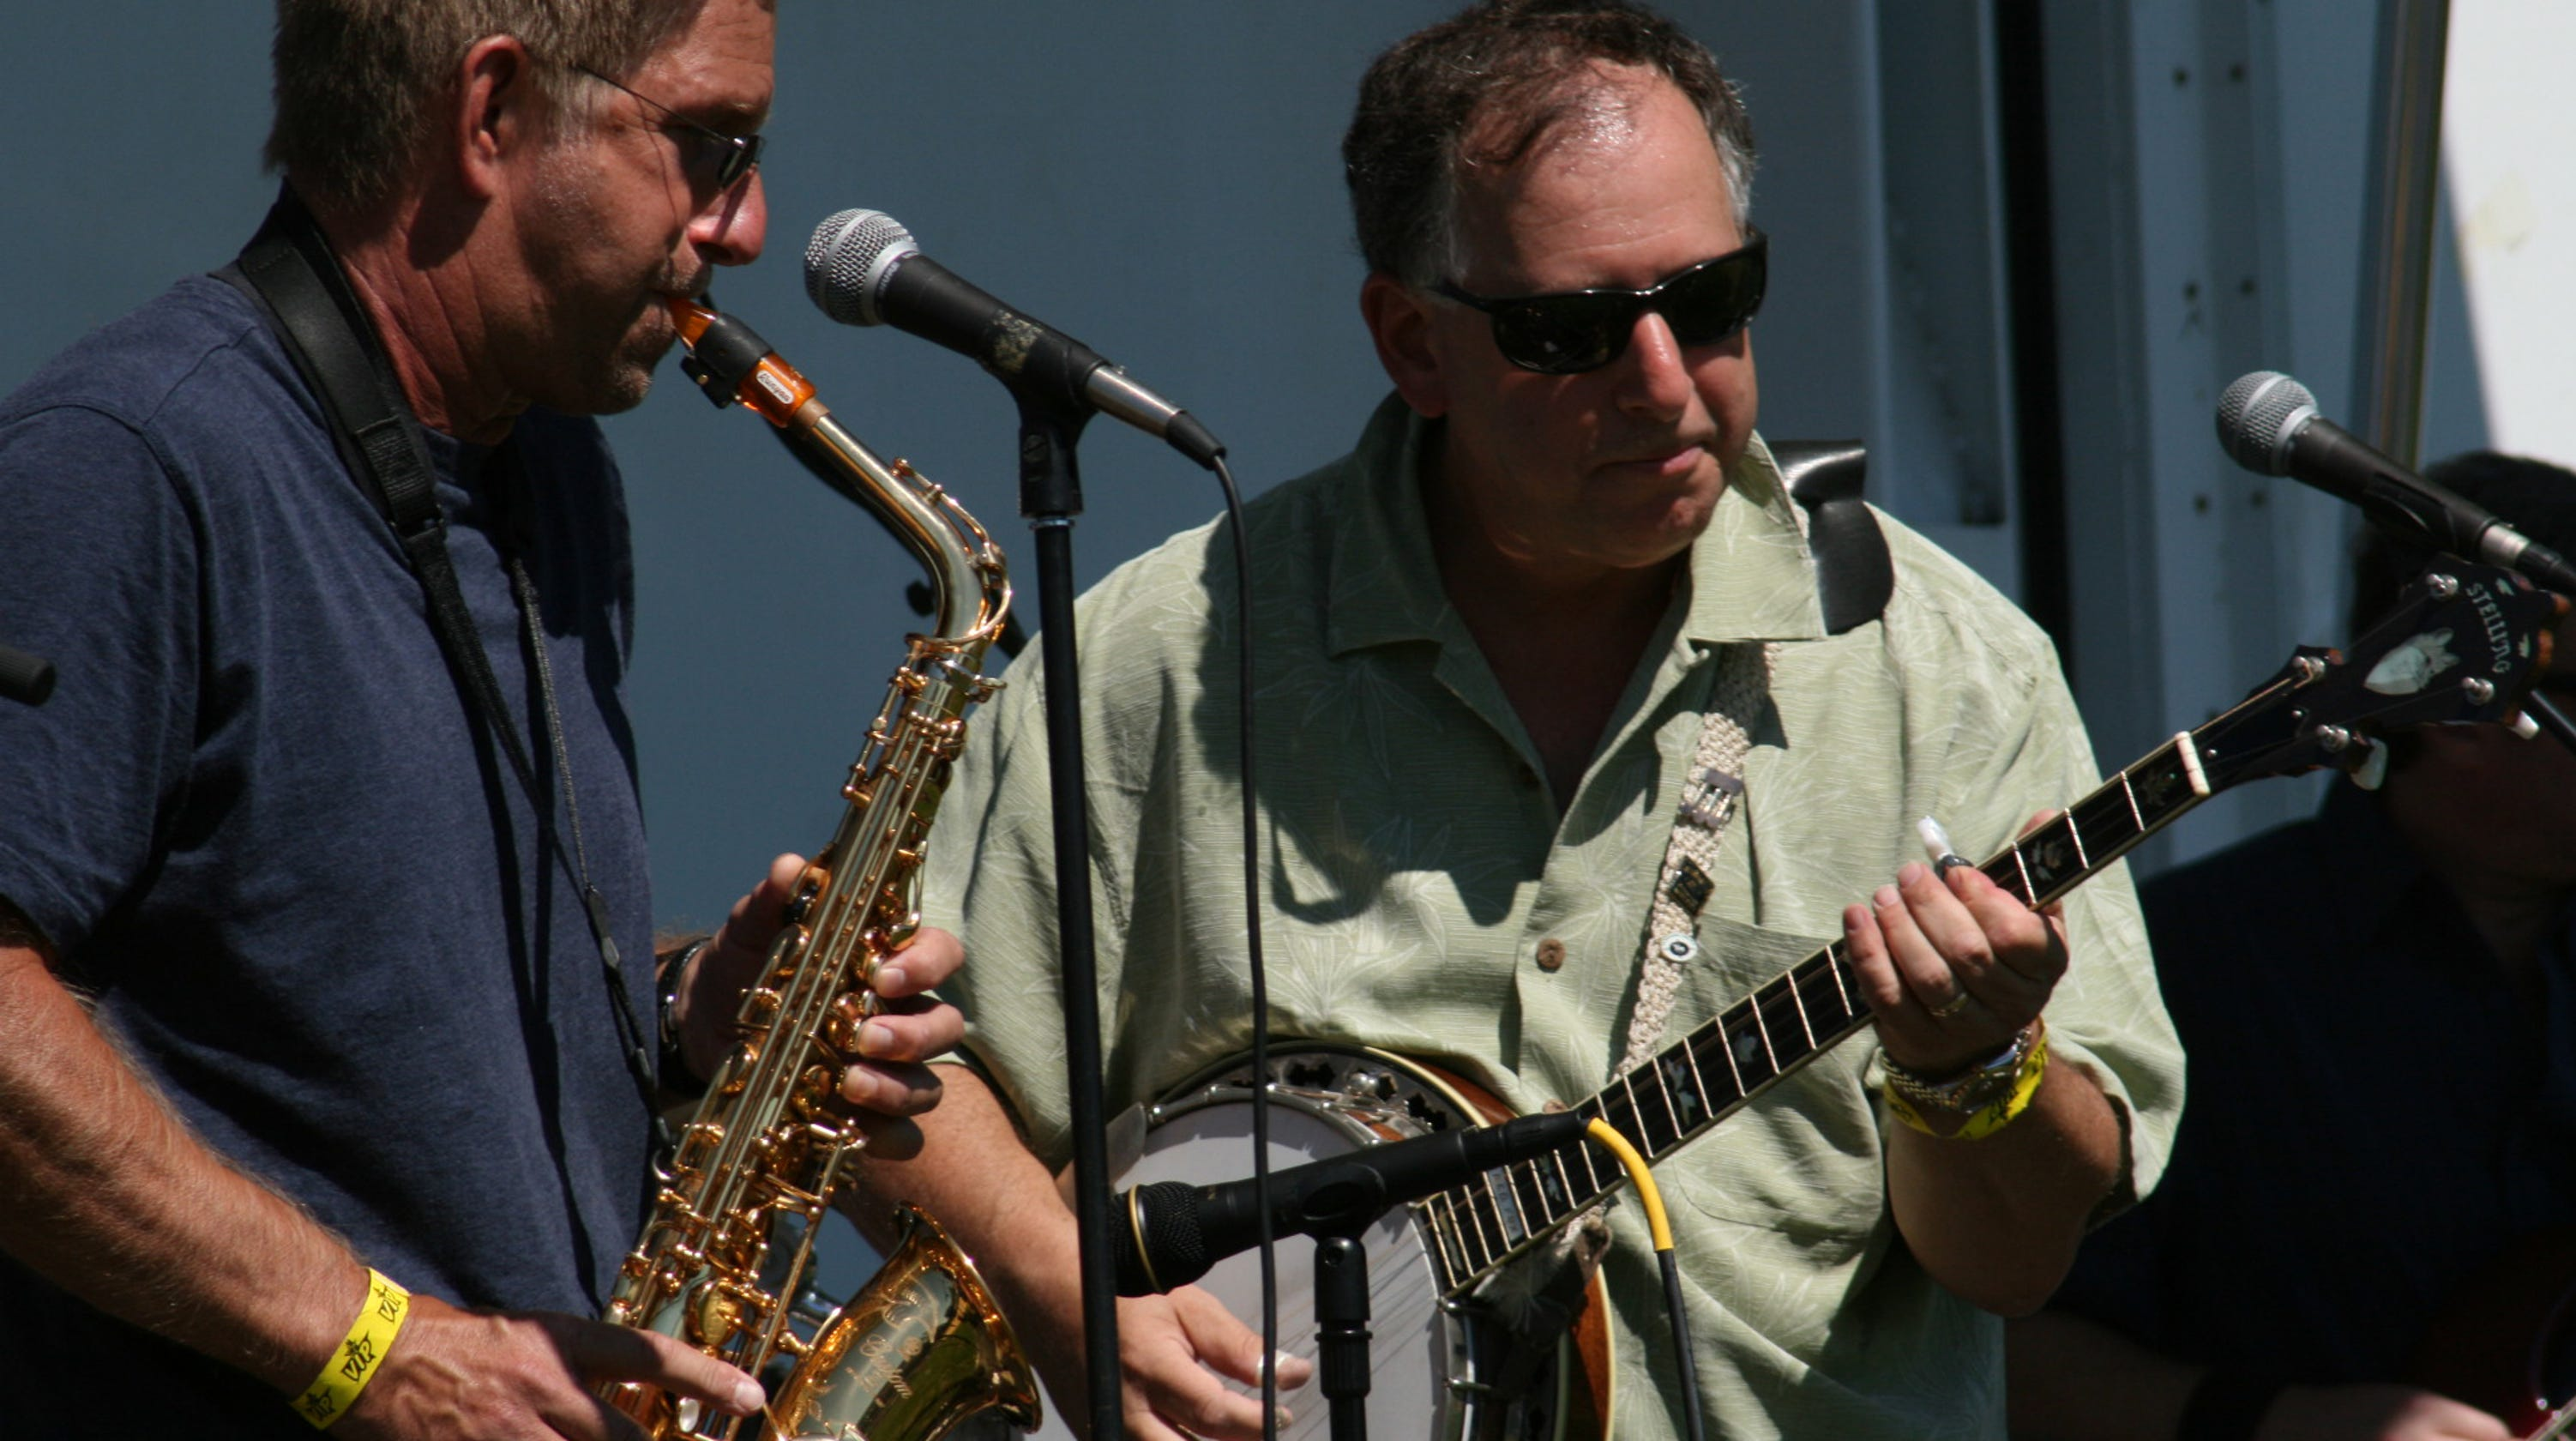 Rockland S Piermont Pal Labor Day Music Festival 4 Things To Know